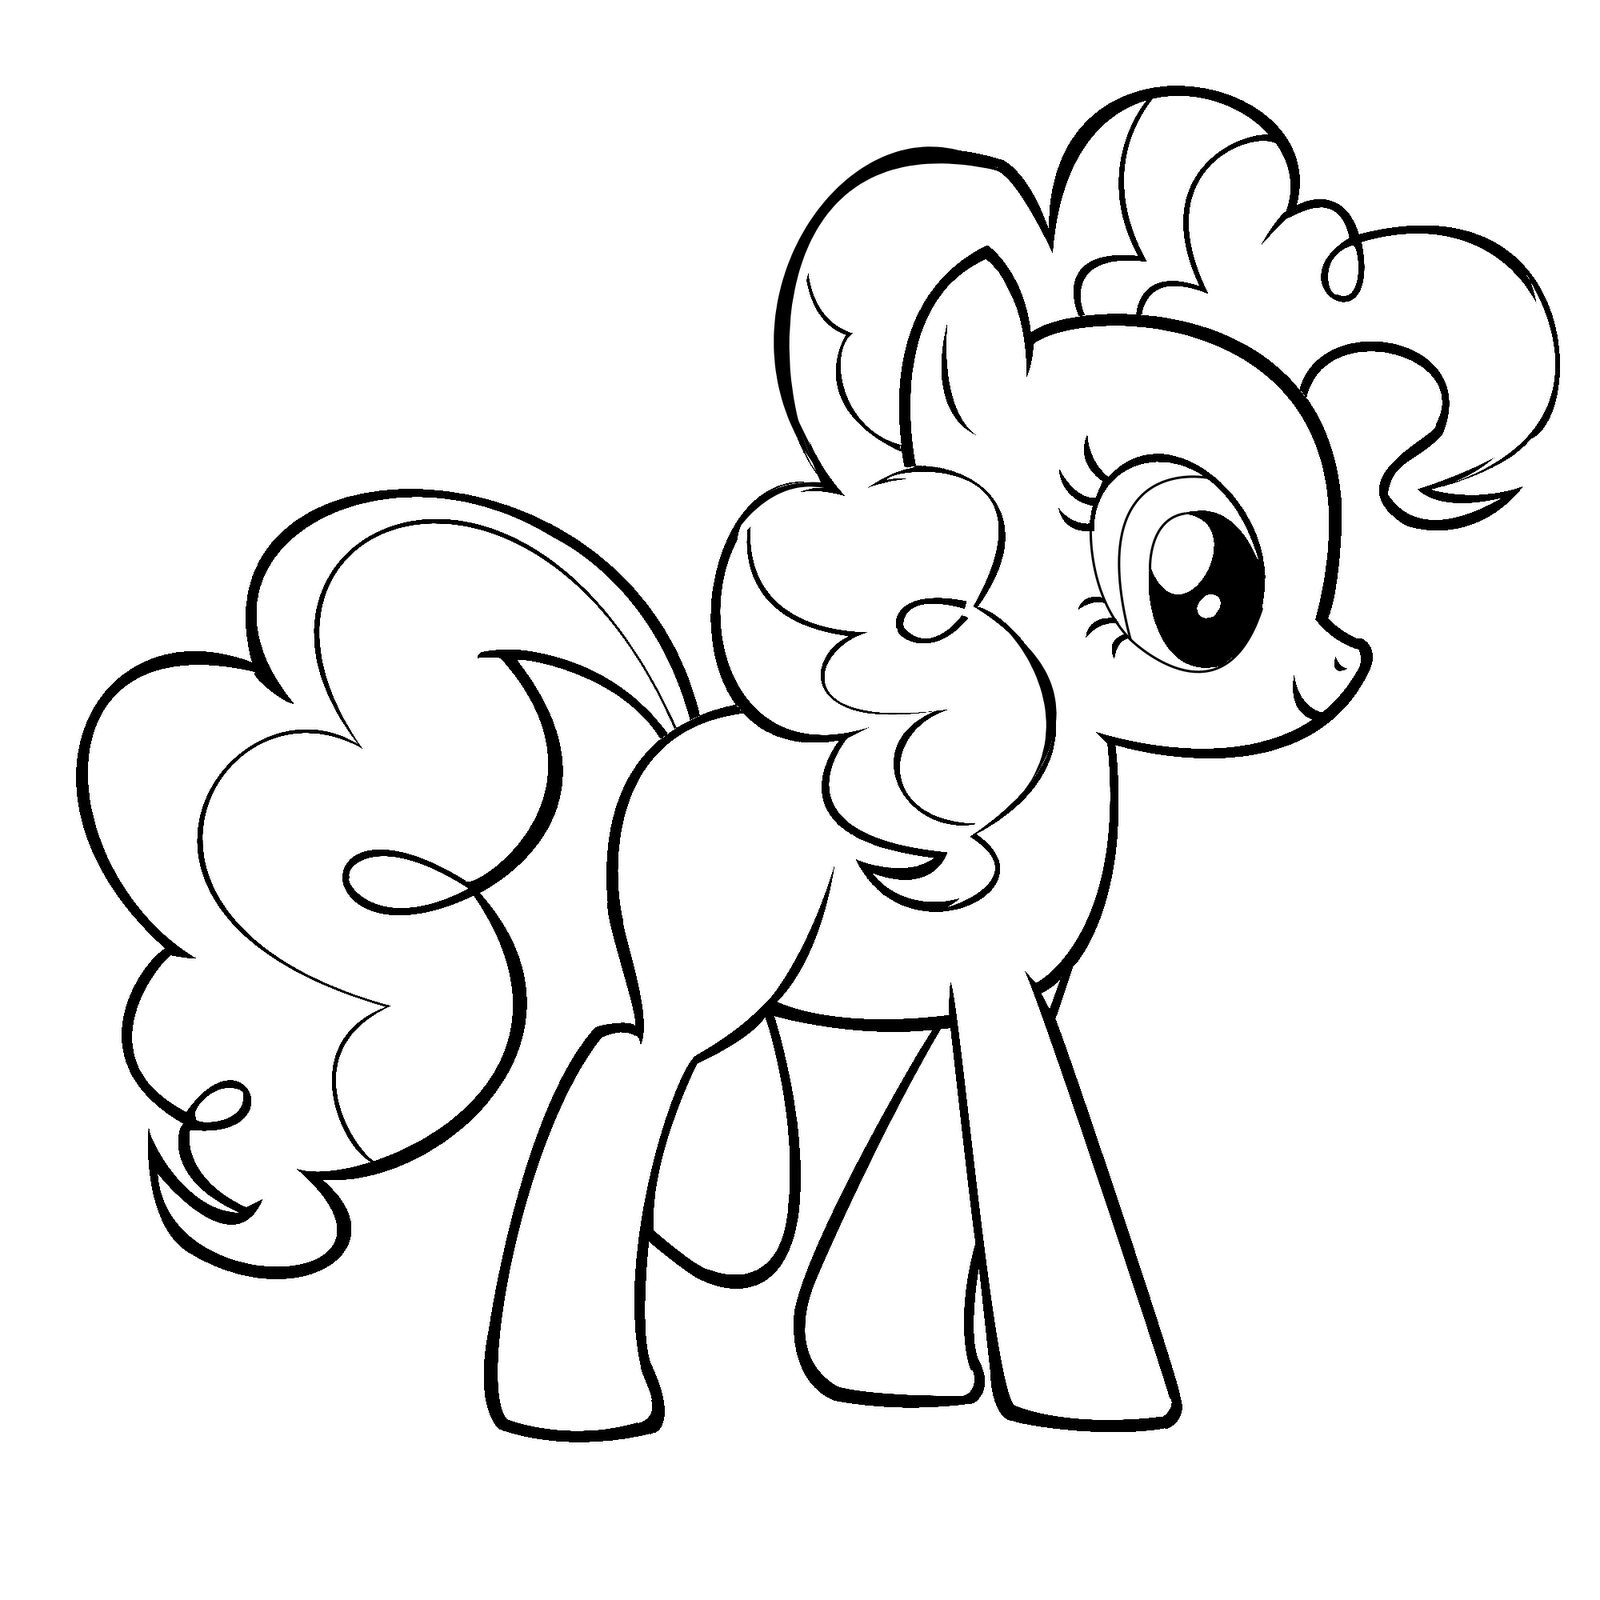 printable pinkie pie coloring pages - Pinkie Pie Coloring Pages